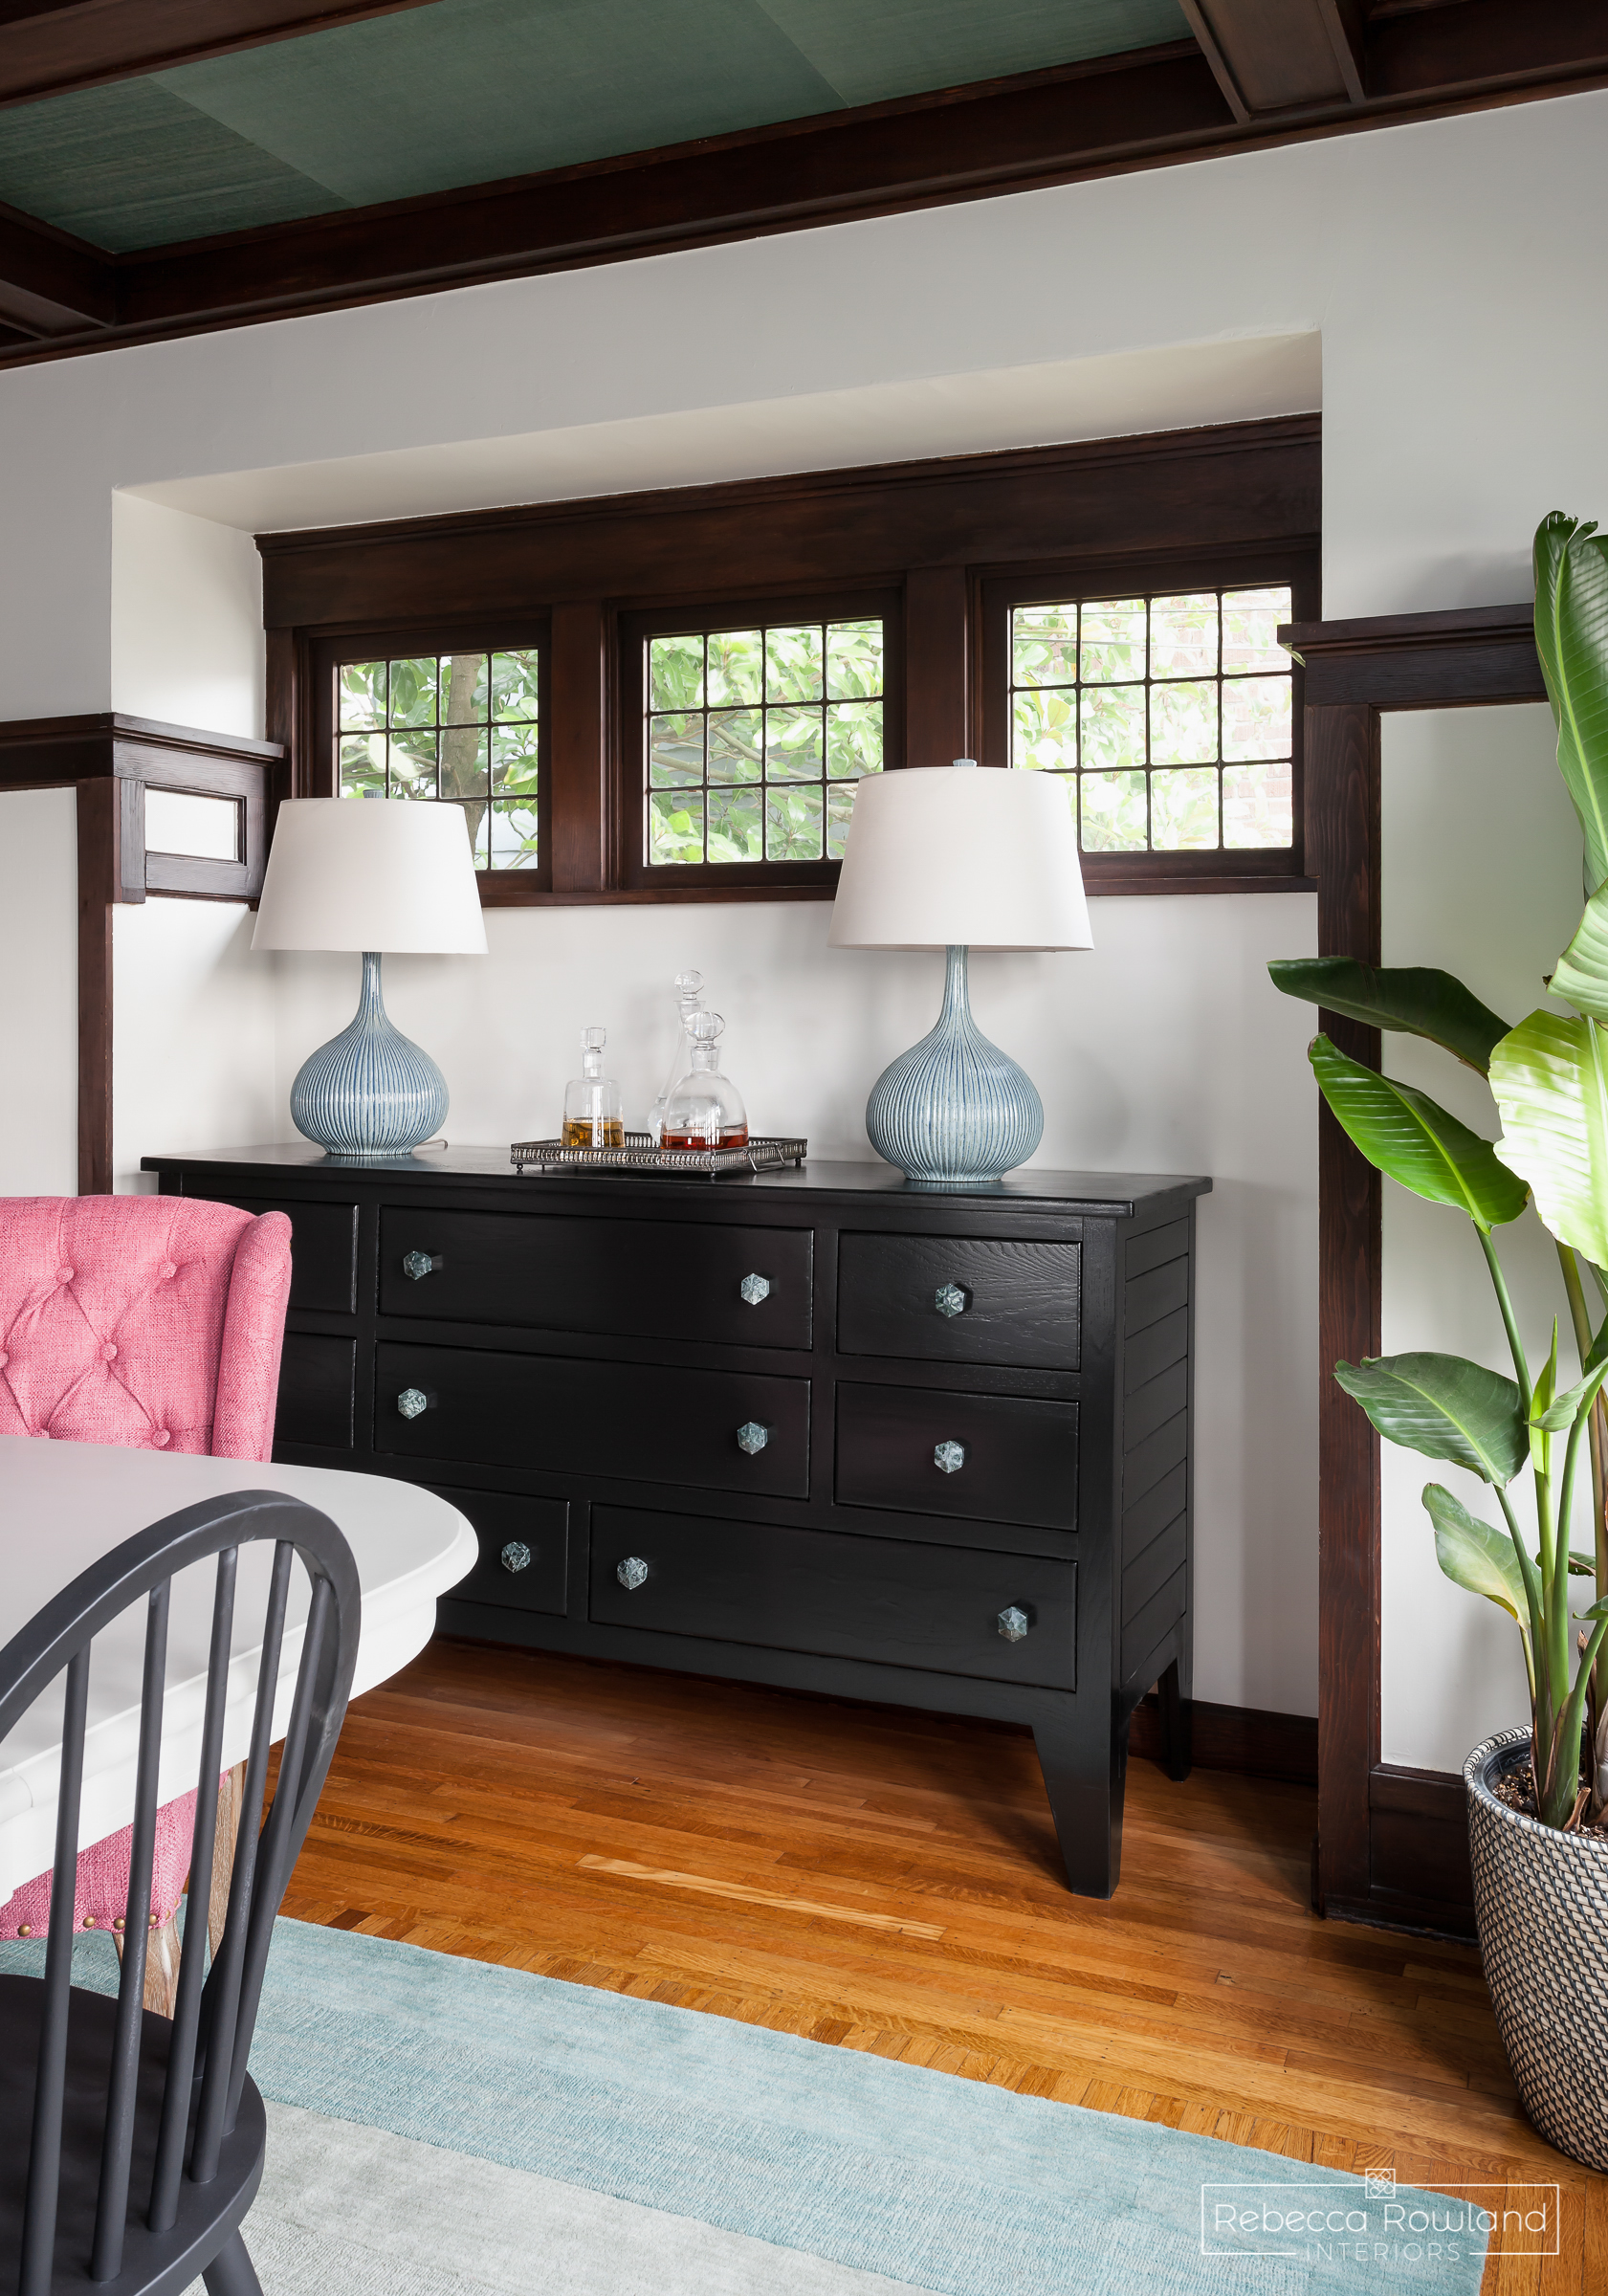 The Reveal: A Dining Room Gets an Updated Sideboard. Design: Rebecca Rowland Interiors. Photograph: Julie Mannell